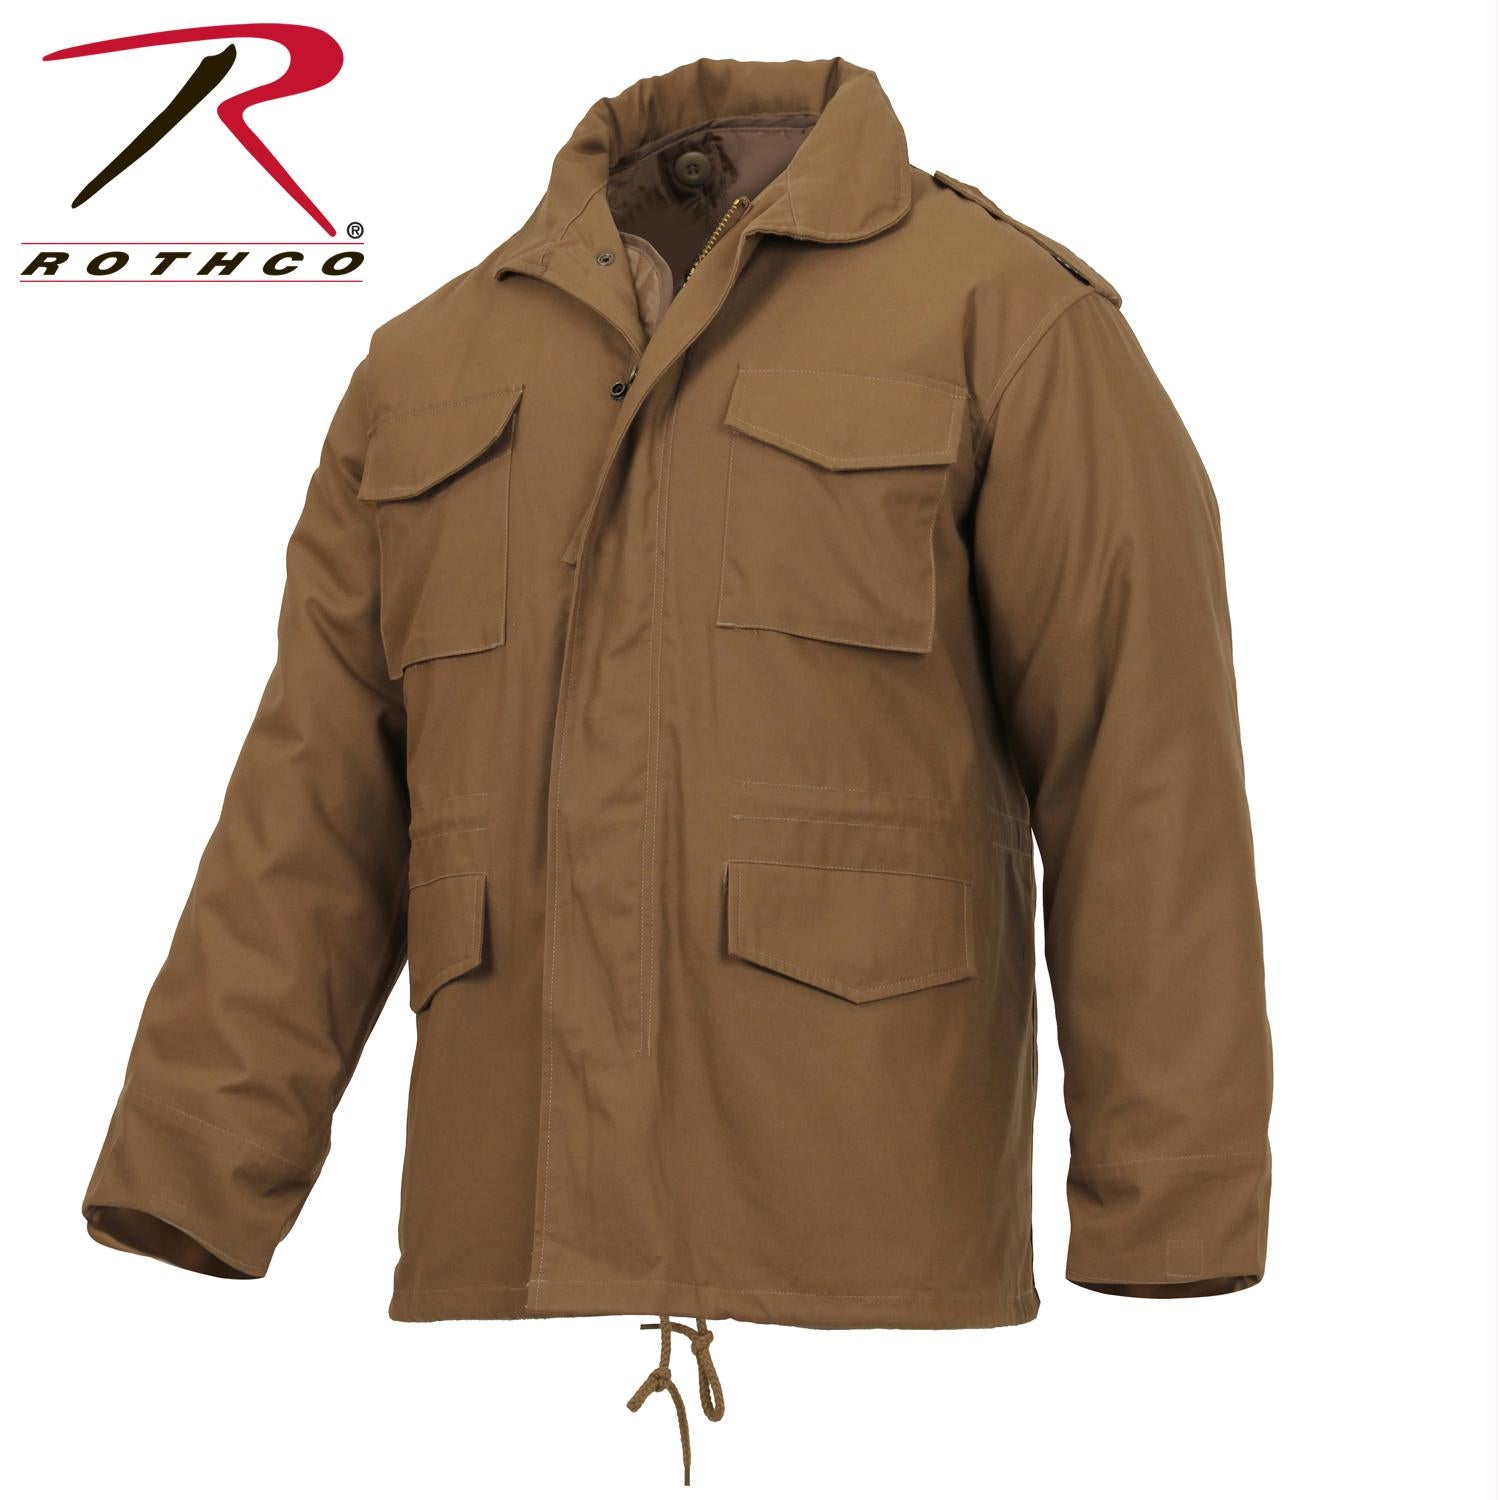 Rothco M-65 Field Jacket - Coyote Brown / 2XL